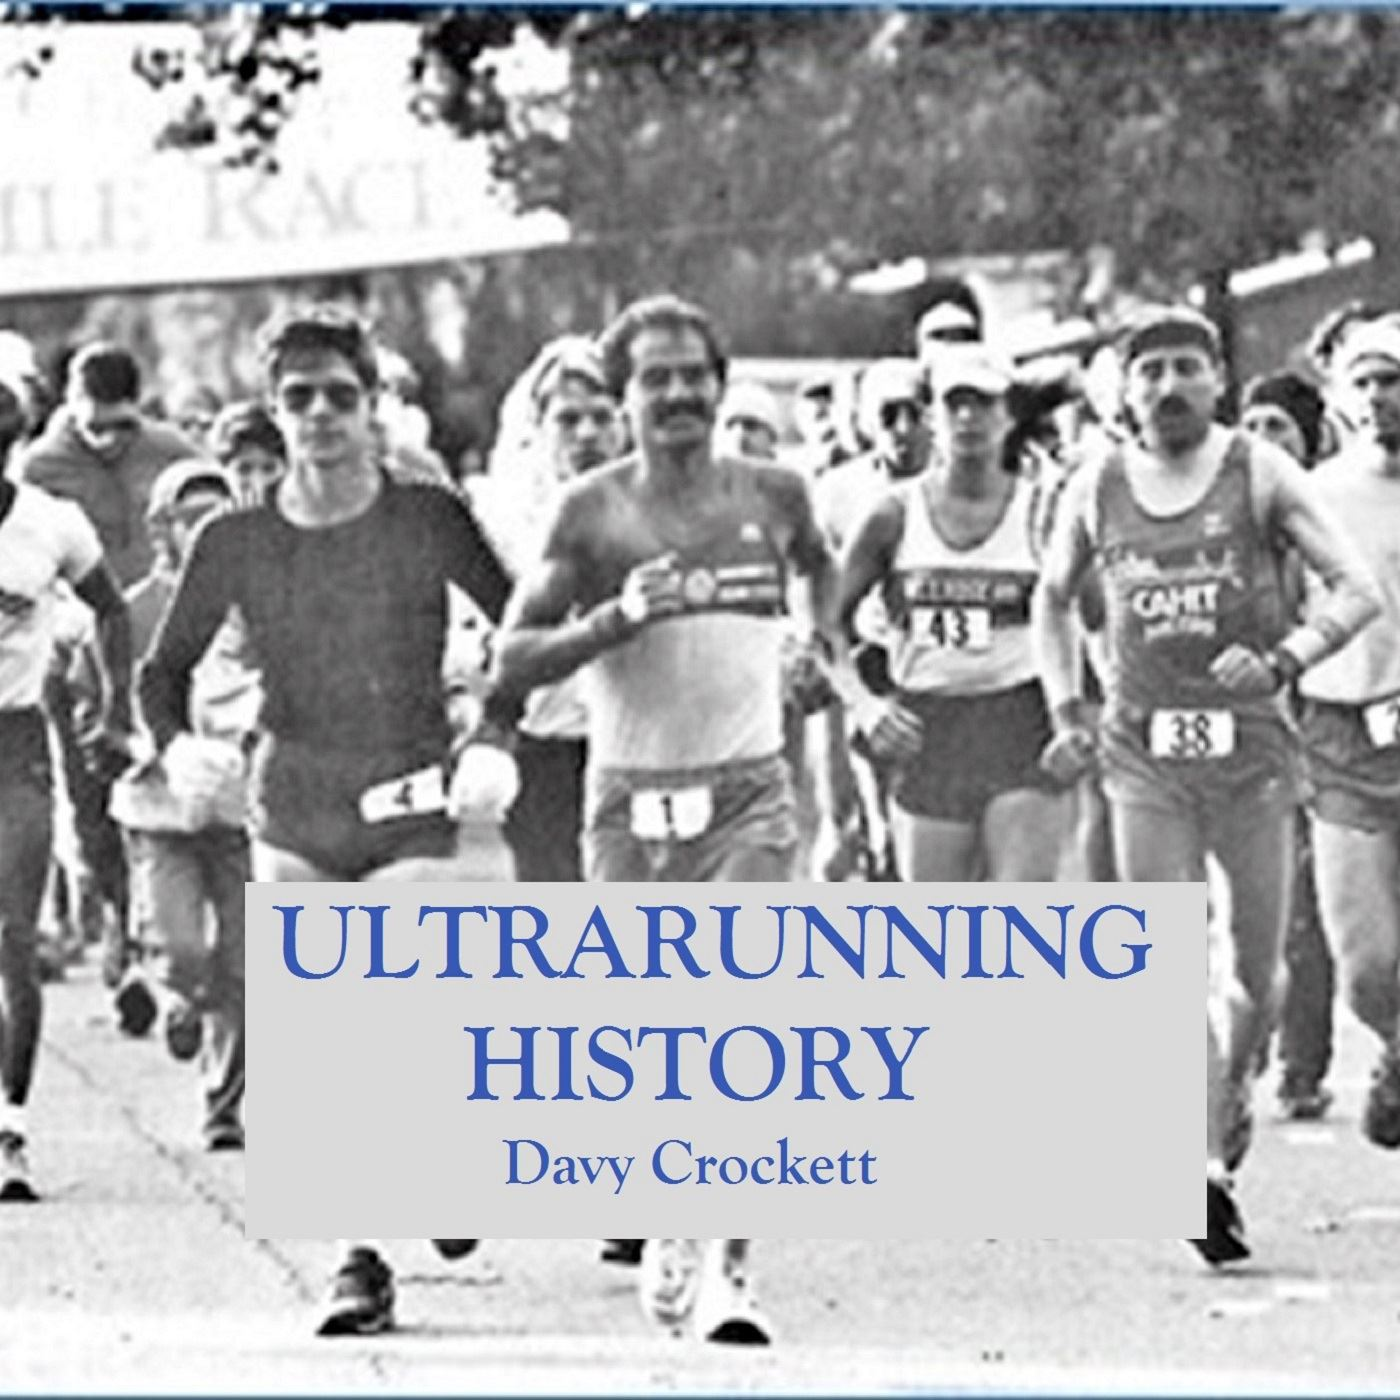 74: The 100-miler: Part 21 (1978) Ed Dodd and Don Choi